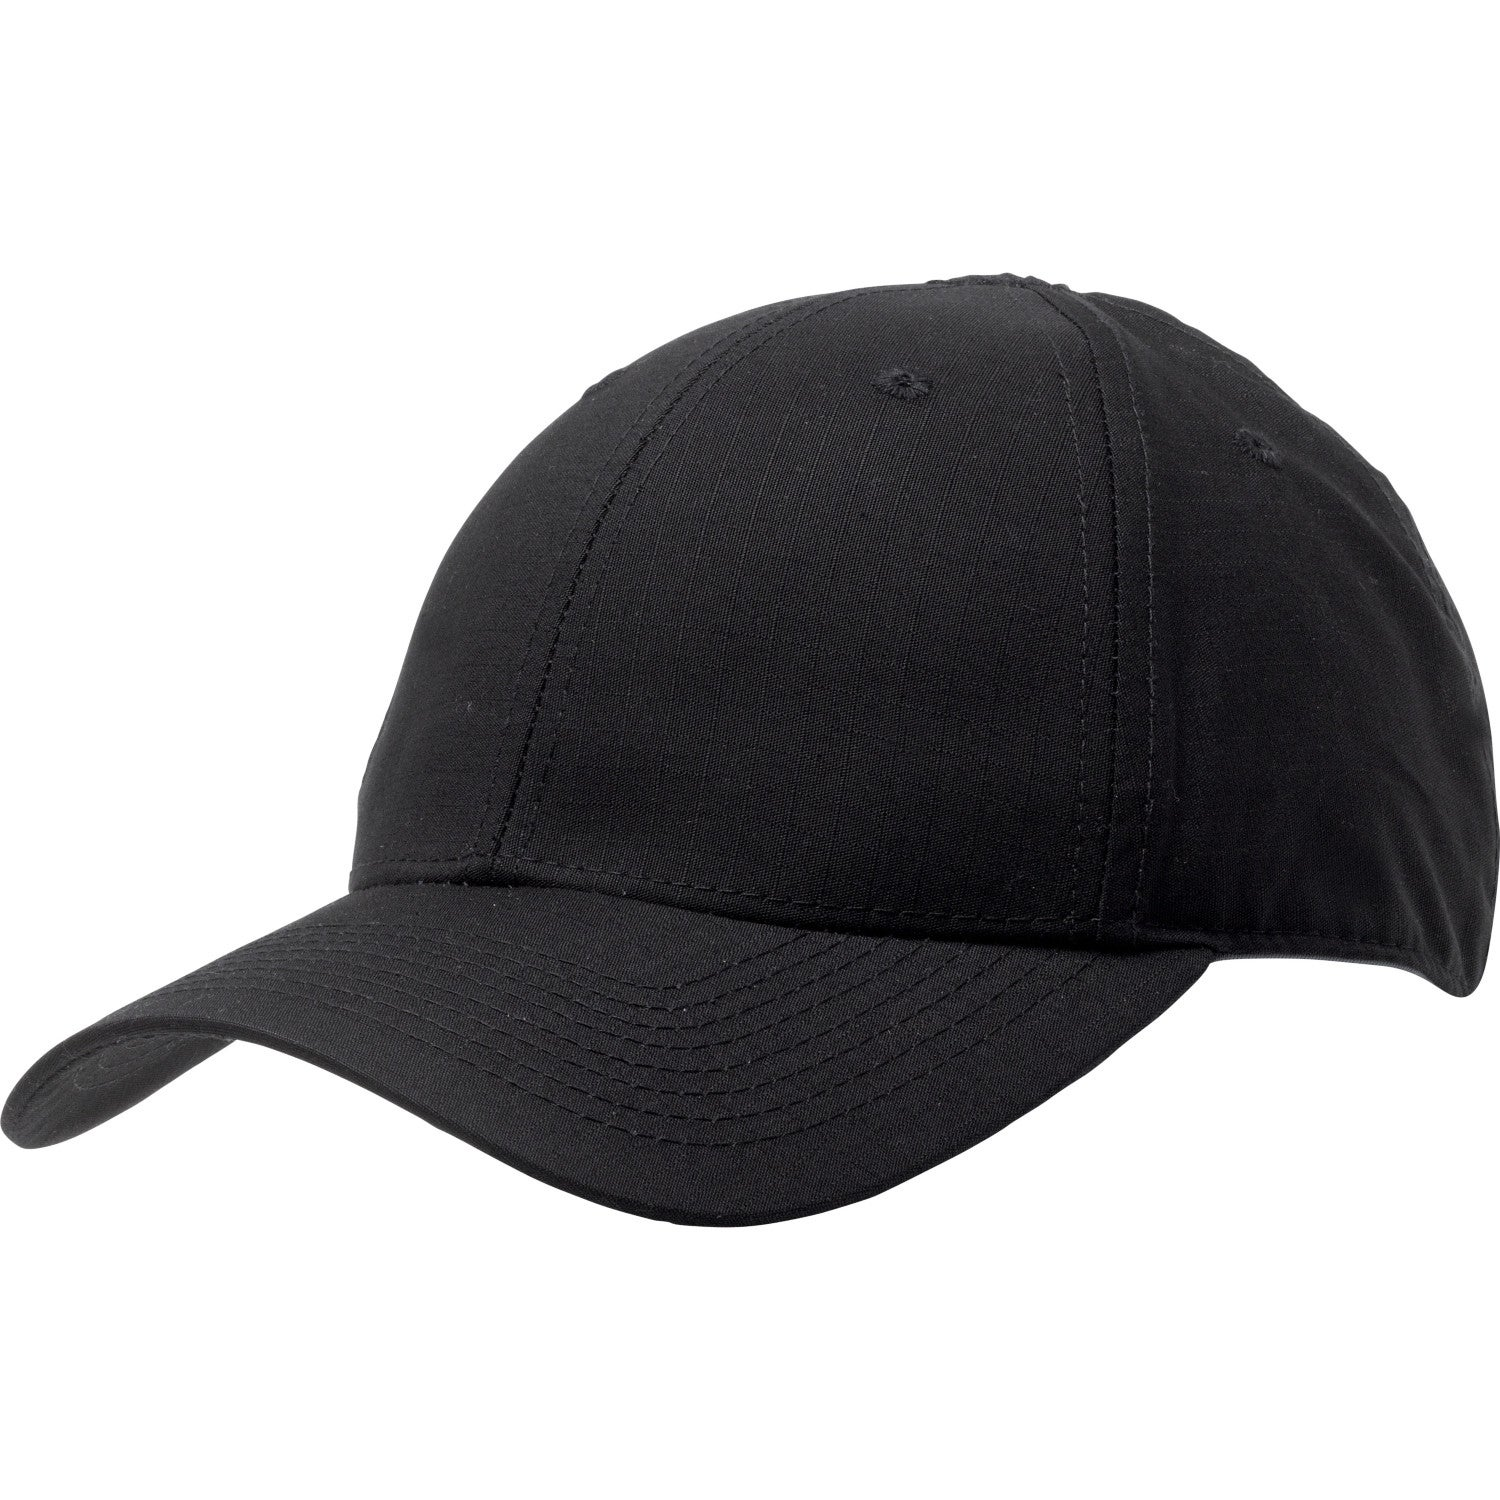 Cappello 5.11 Tactical Taclite Uniform